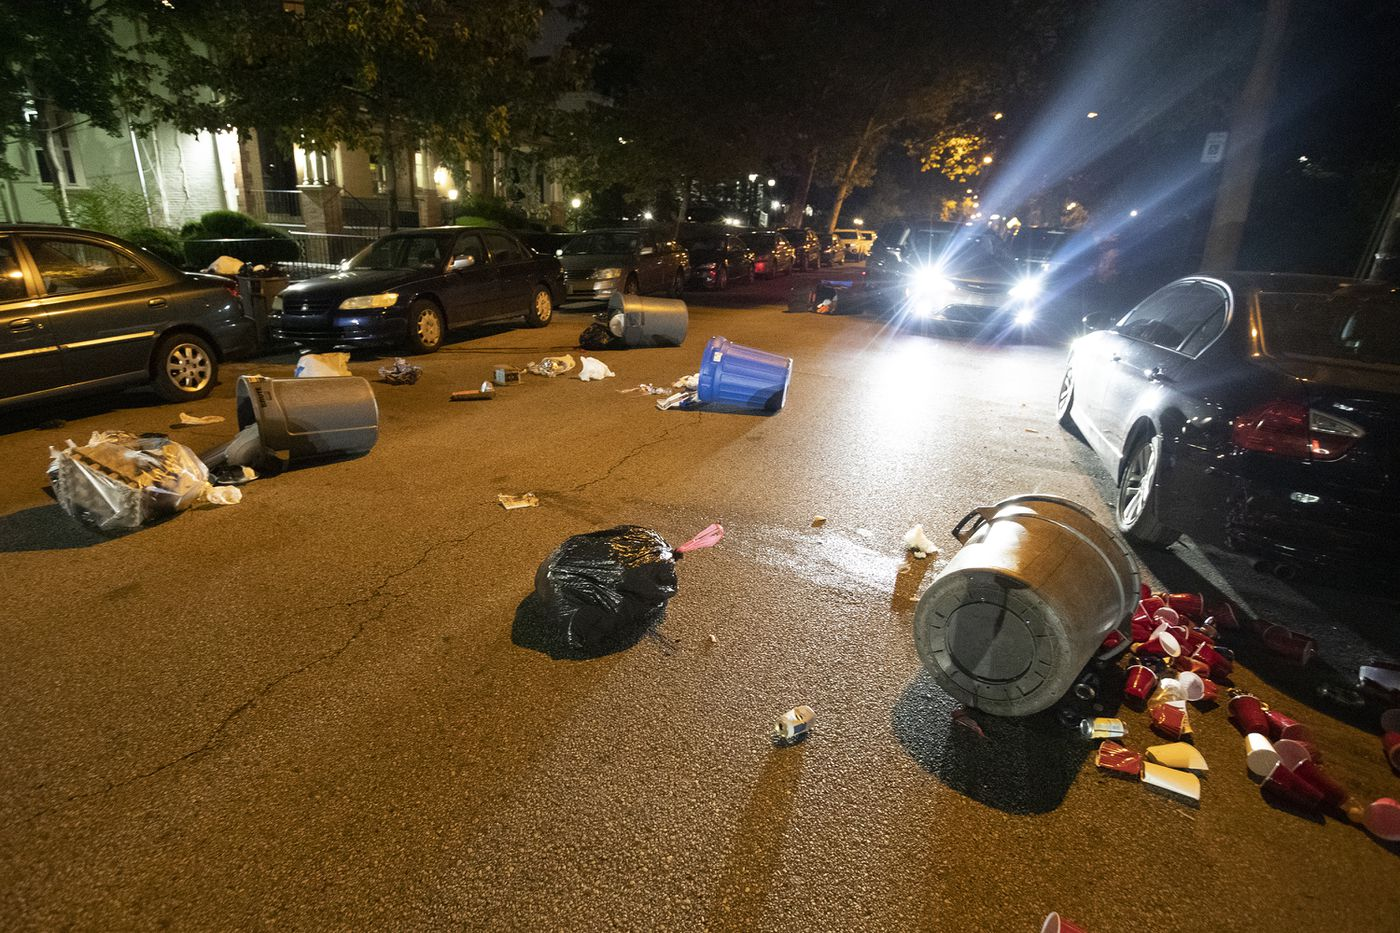 Garbage cans thrown in the street by a group of protesters marching in response to the Jacob Blake shooting in Wisconsin. Numerous windows were shattered at the University of Pennsylvania.